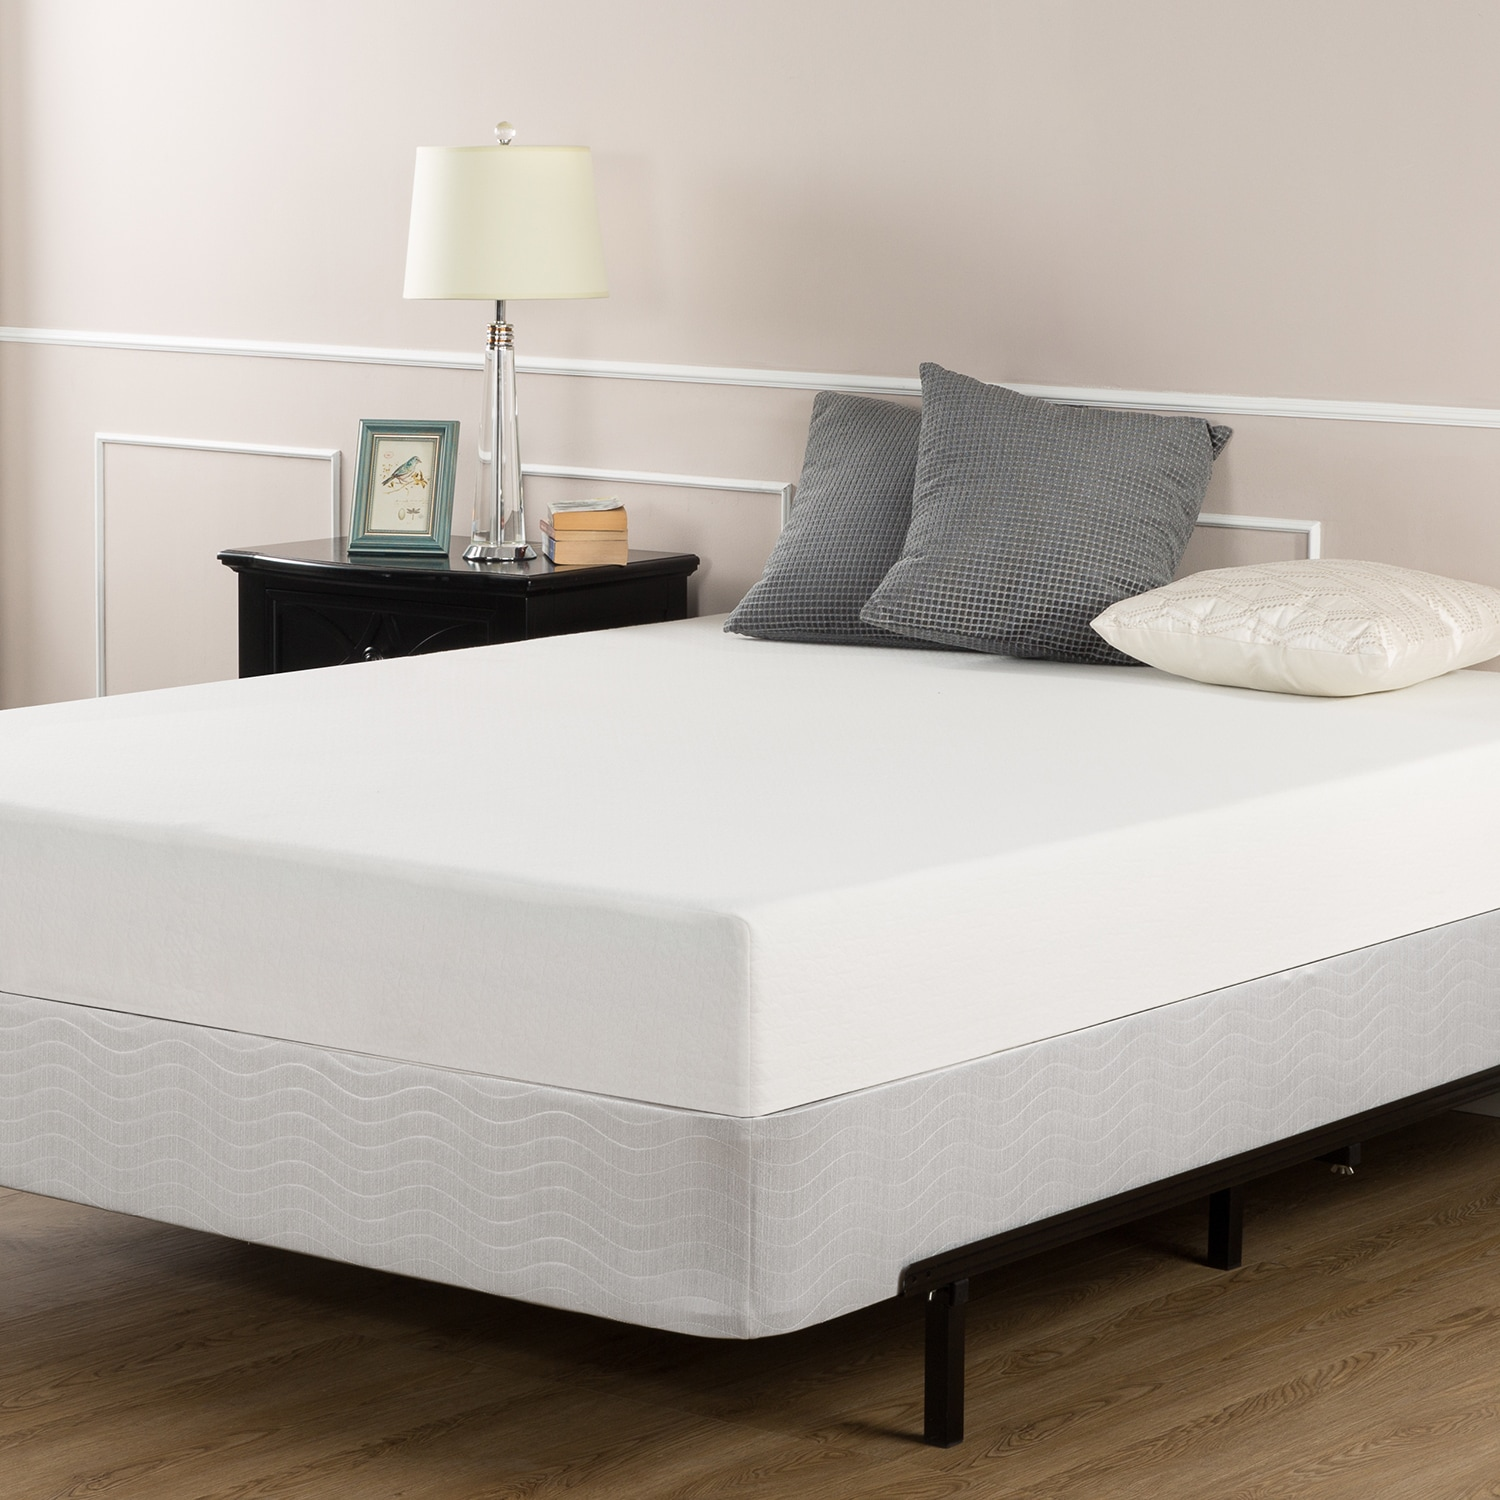 Priage 6-inch Full-size Memory Foam Mattress and Box Spri...